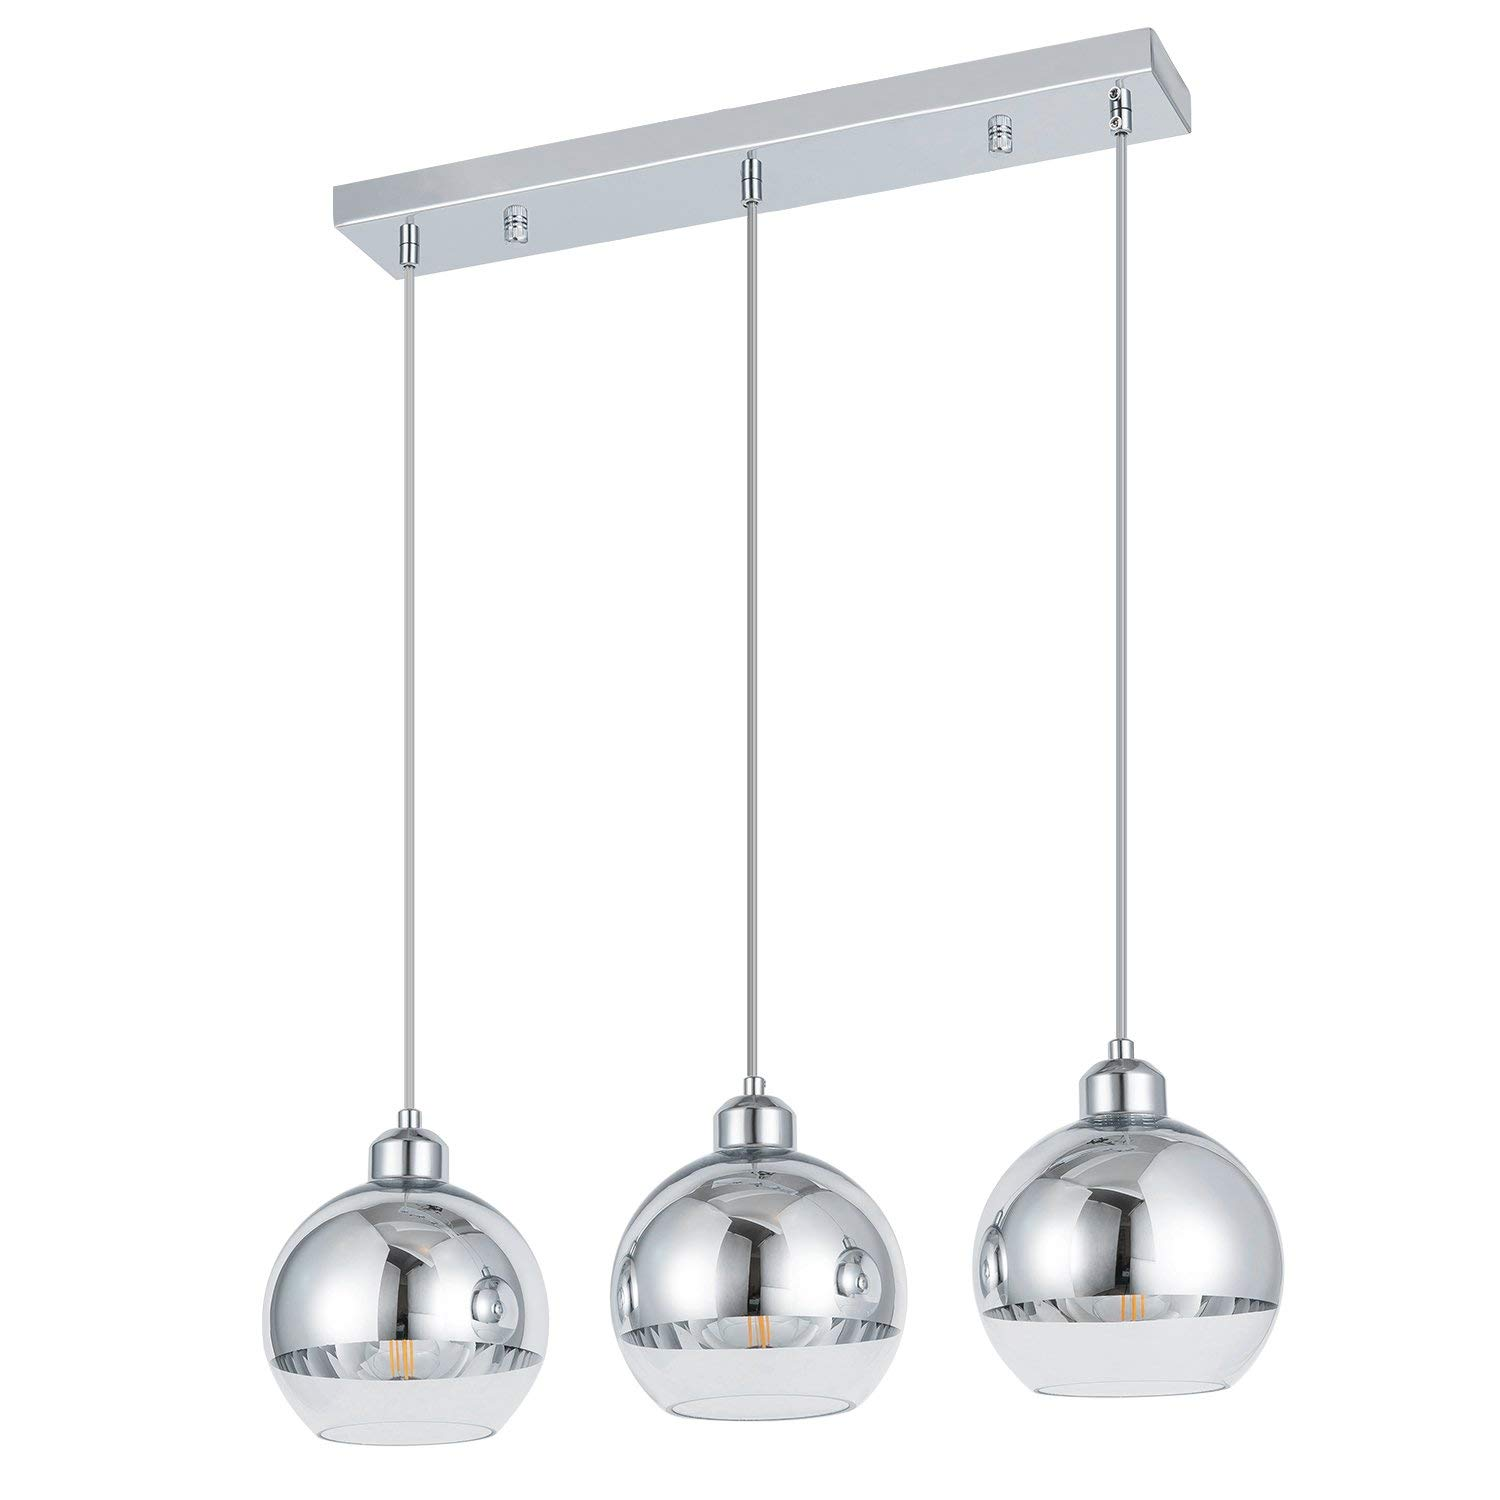 Cafe,Bar LED bulb Not Included for Kitchen Island Dining room Crystal mini pendant light fixtures,Chrome finish crystal pendant lamp Smart Lighting-Shupregu 1-light pendant lighting